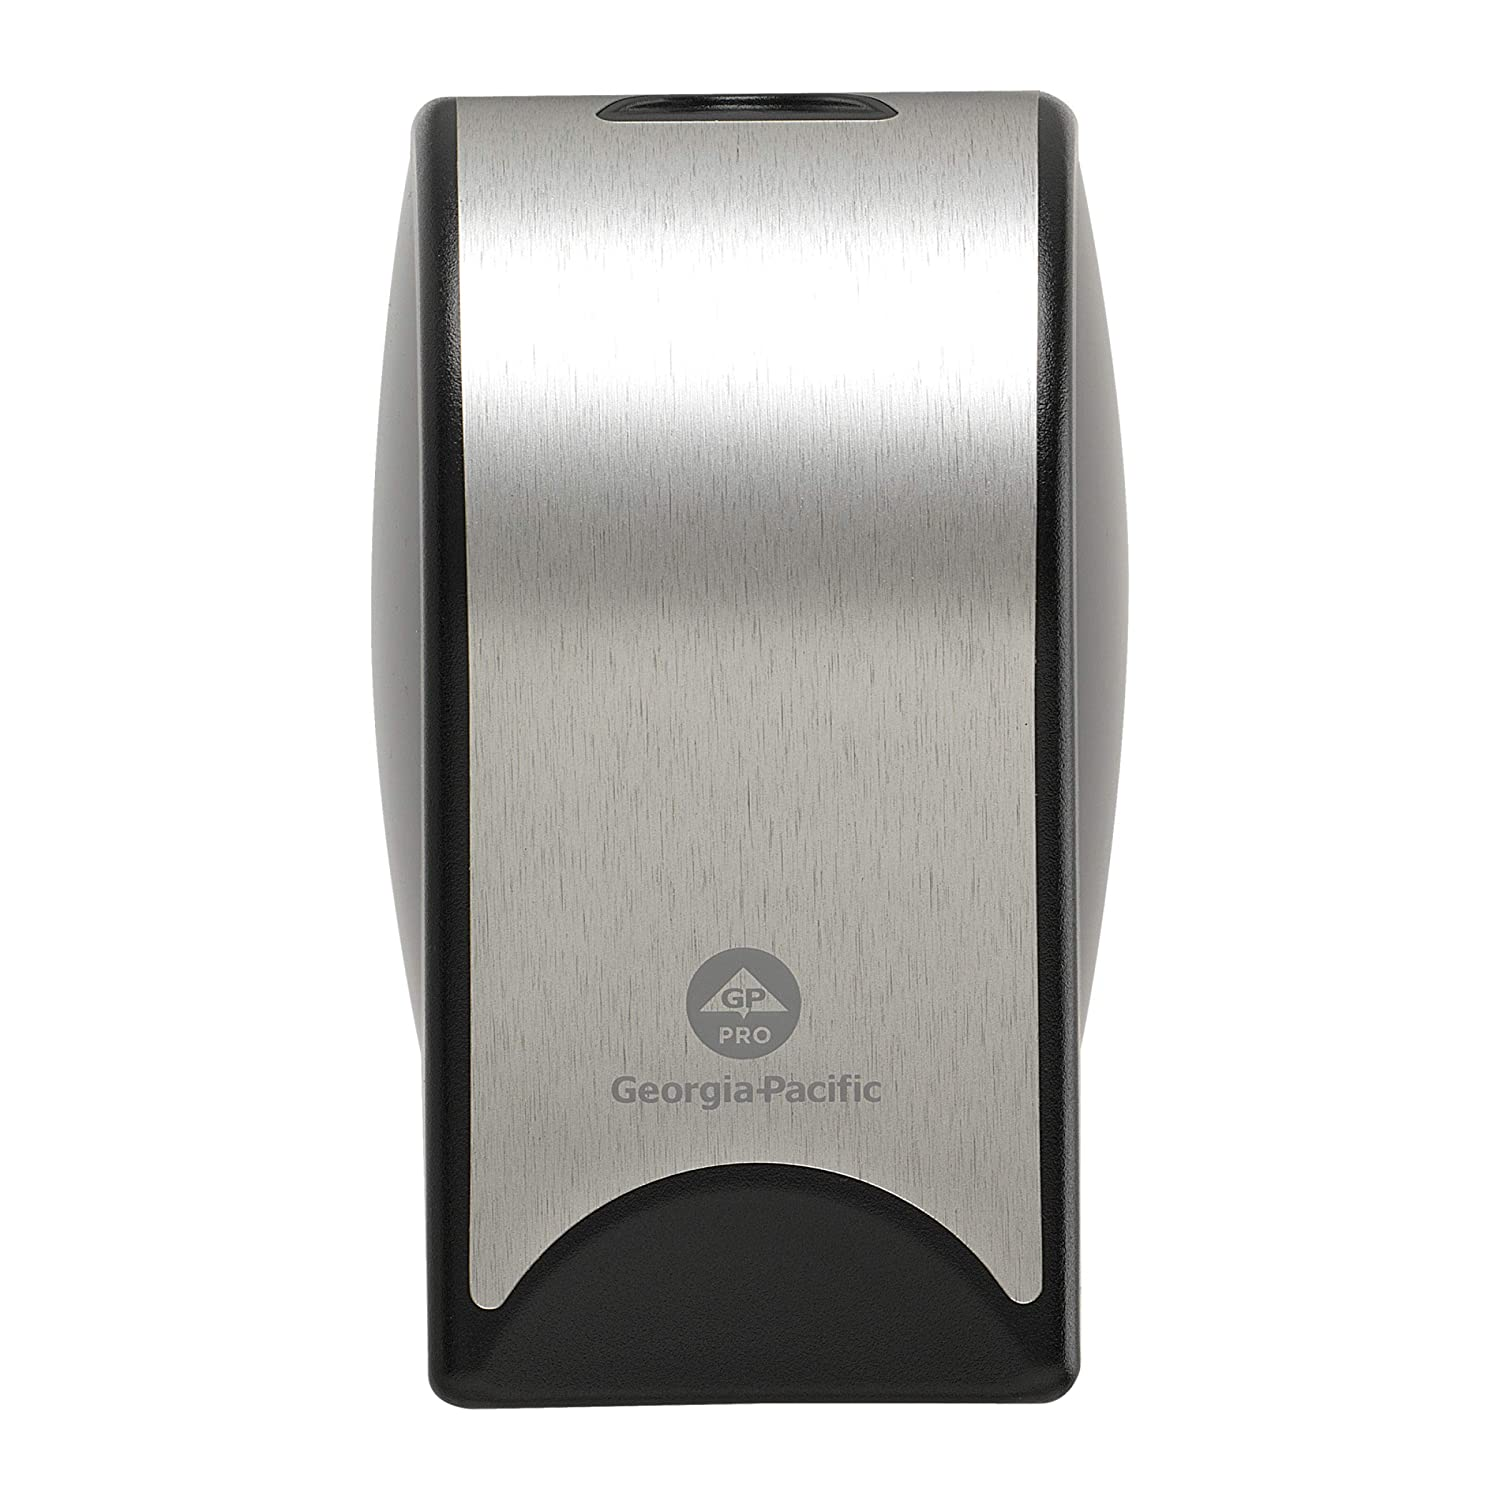 """ActiveAire Powered Whole-Room Air Freshener Dispenser by GP PRO (Georgia-Pacific), Stainless Steel, 53258A, 4.090"""" W x 3.610"""" D x 6.820"""" H"""